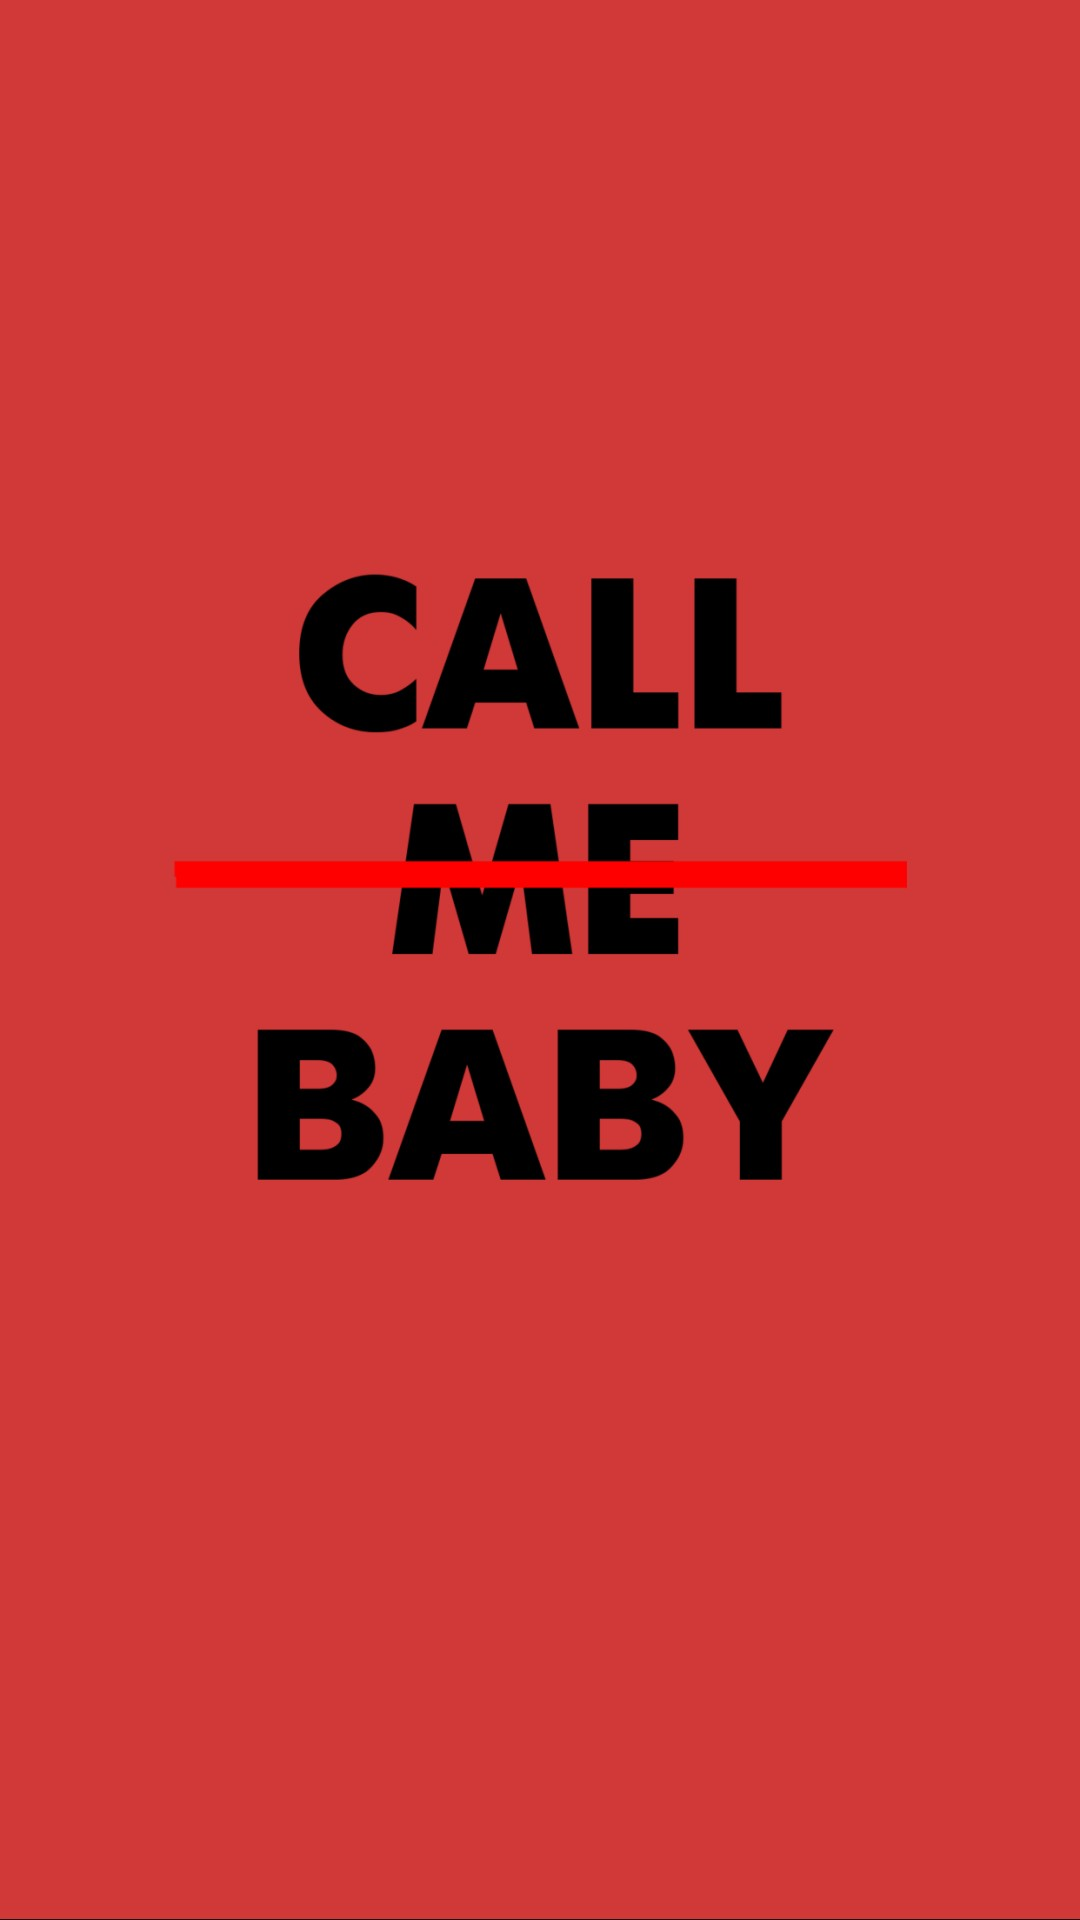 Tumblr 1280 10 Exo Wallpaper Call Me Baby - Exo Call Me Baby , HD Wallpaper & Backgrounds